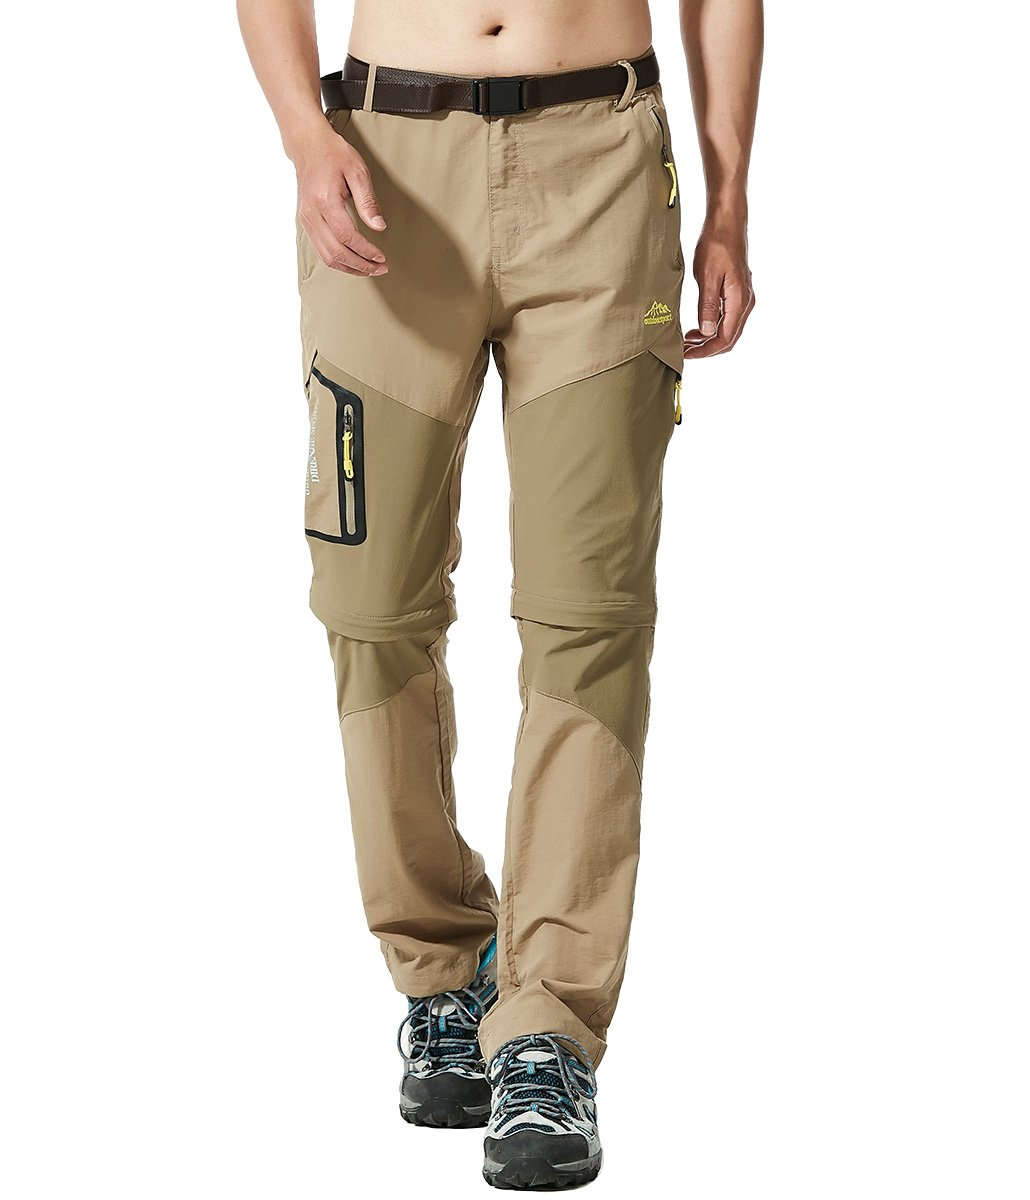 MAGCOMSEN Men's Outdoor Quick Dry Waterproof Hiking Slim Fit Pants with Belt MCS-49